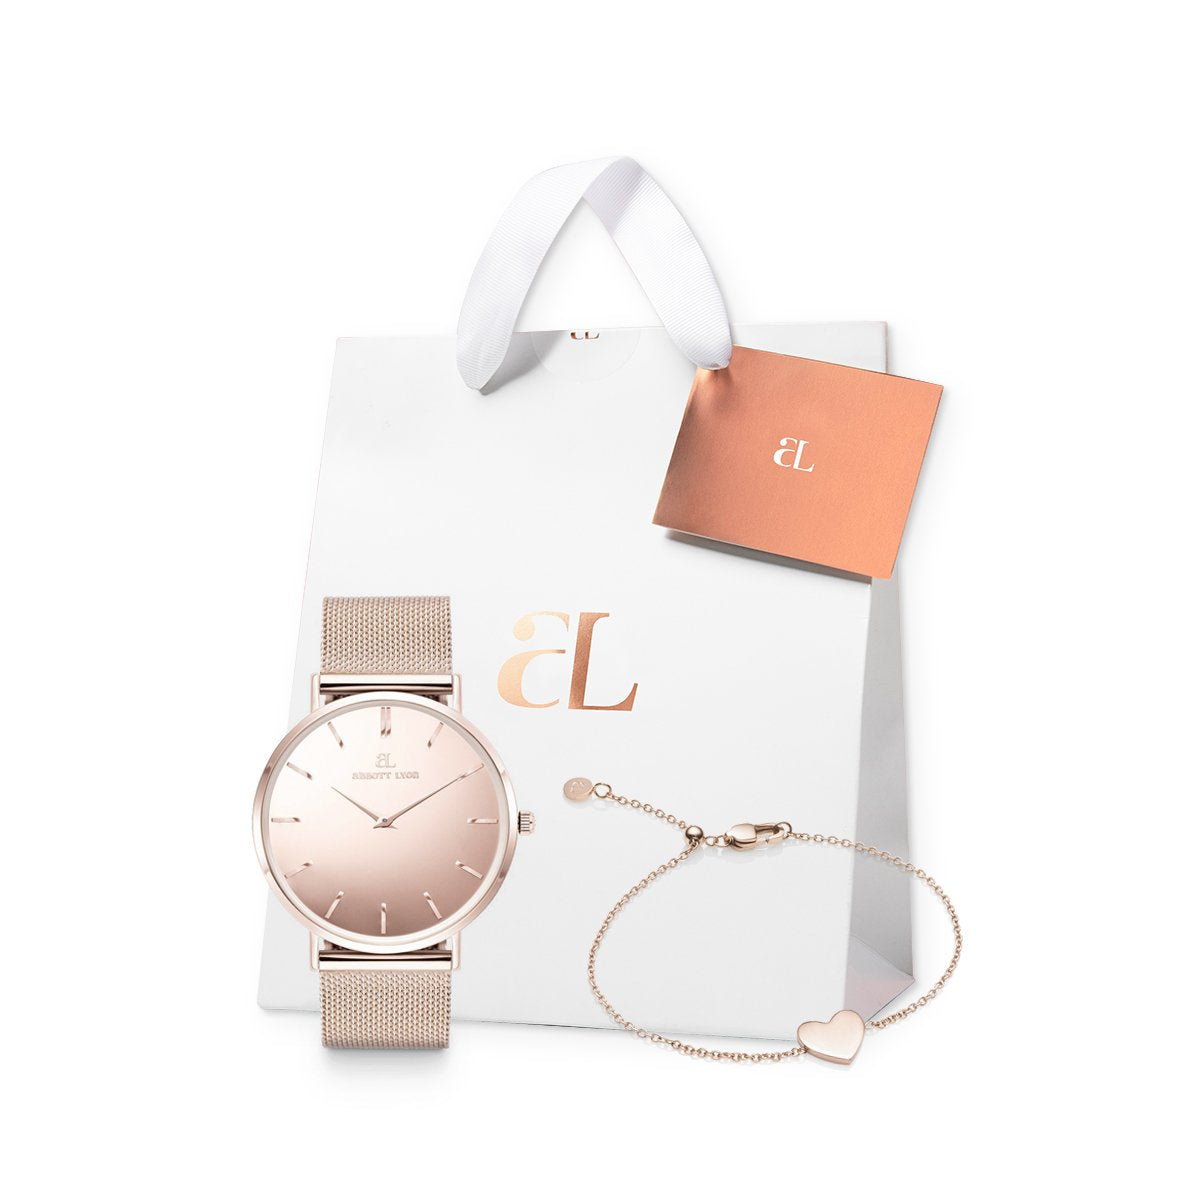 The Blush Chain Mirror Heart Gift Set